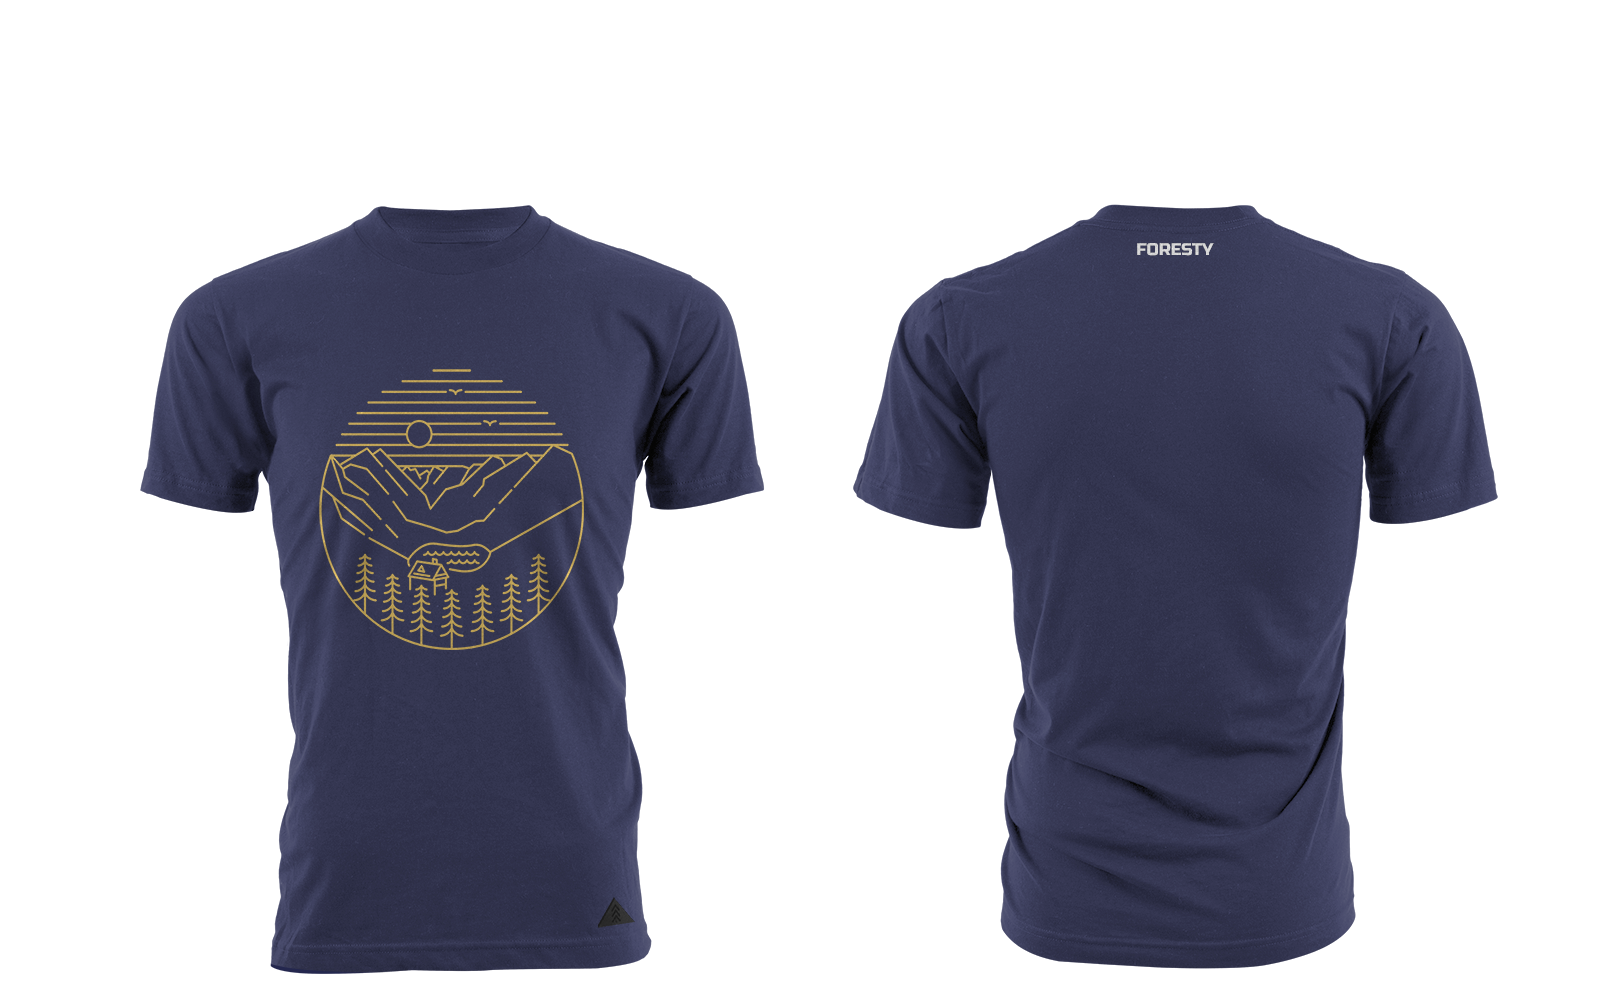 Foresty t-shirt